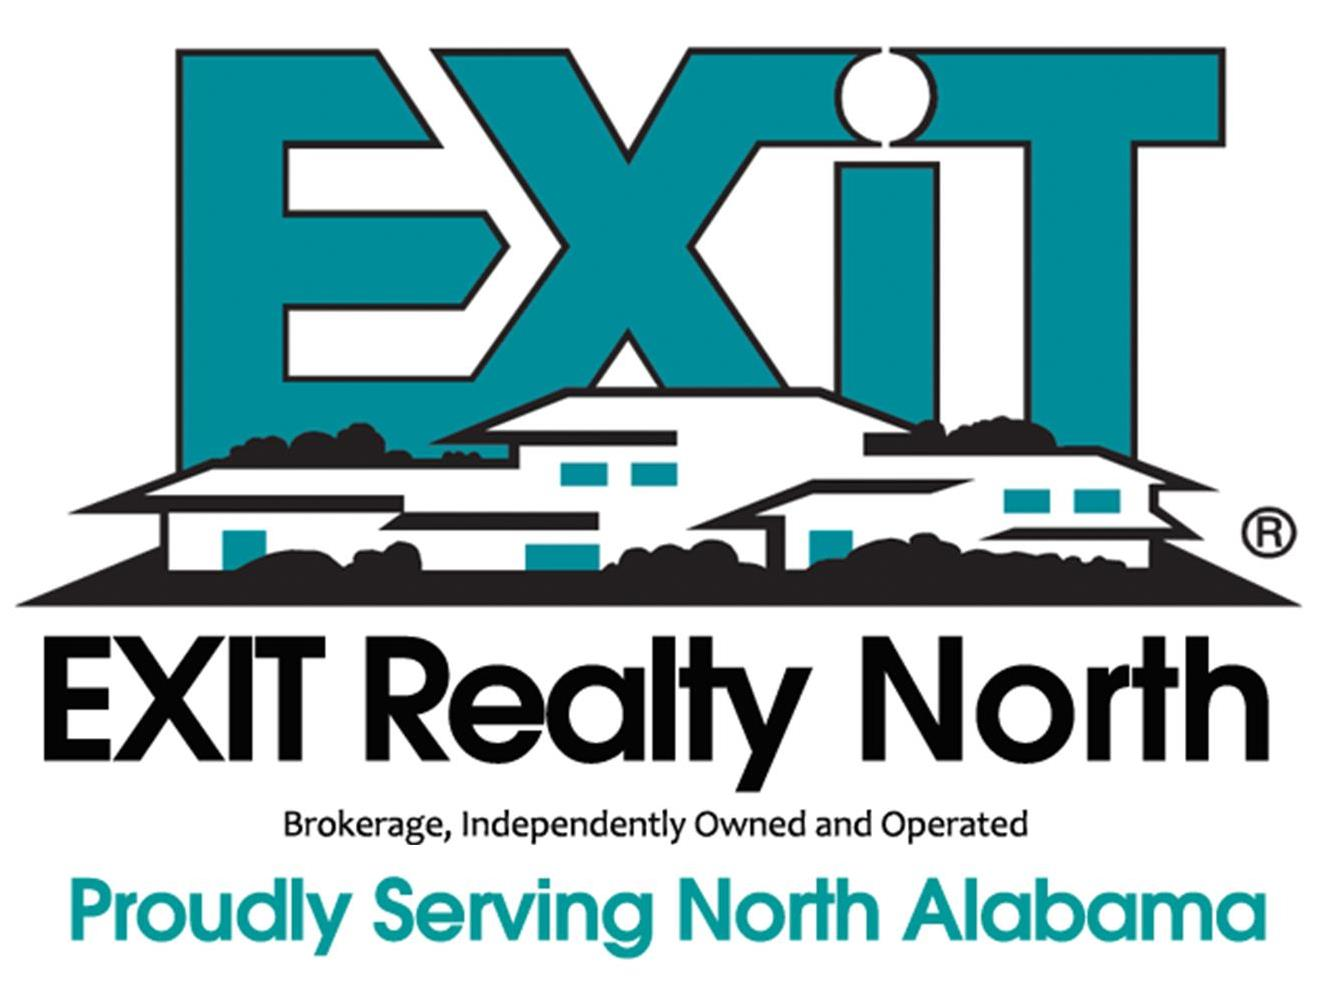 EXIT Realty North under New Ownership